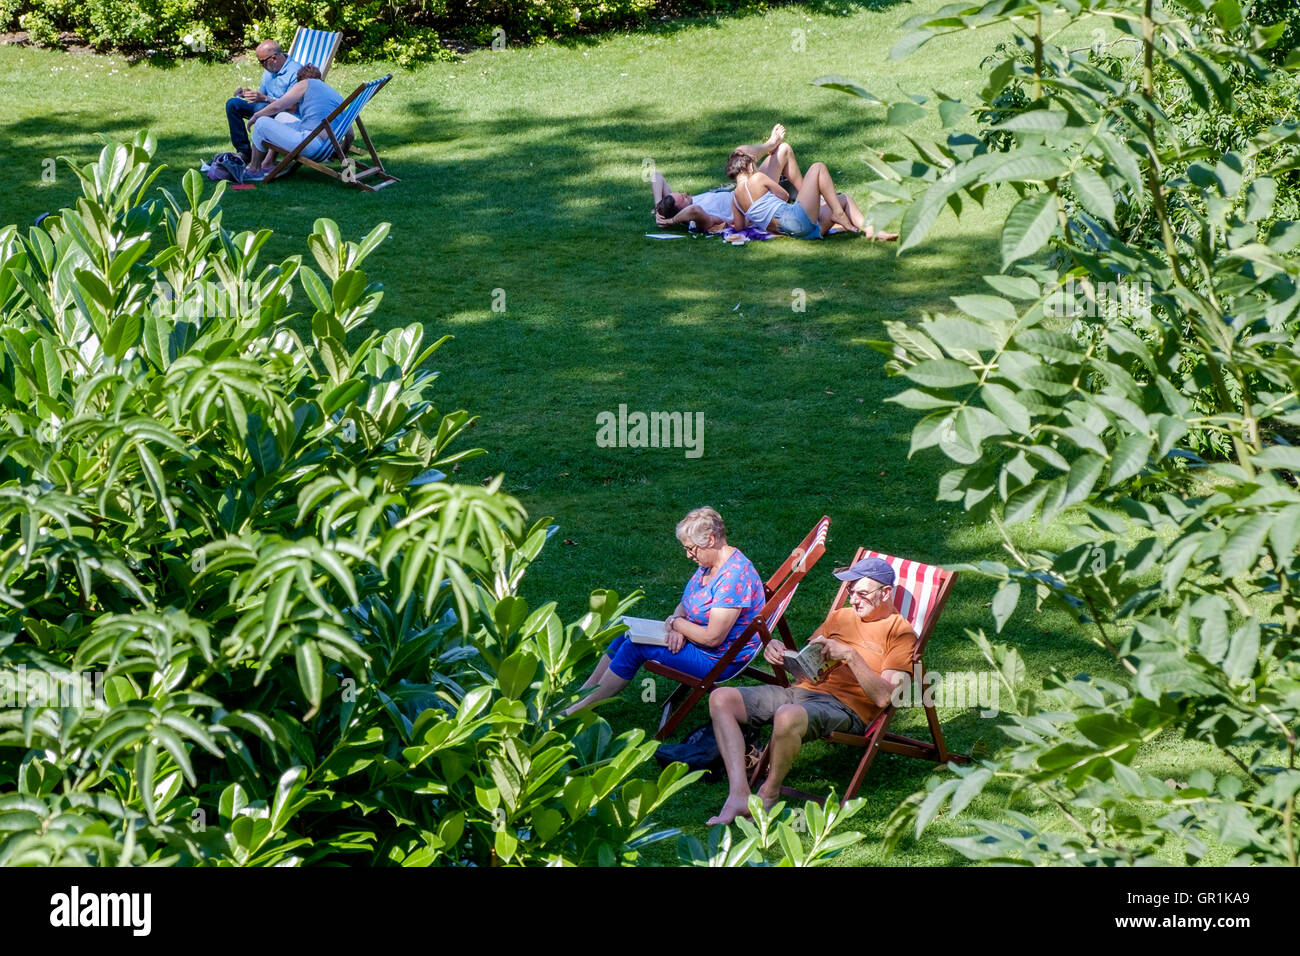 Bath,Somerset,England, UK. People are pictured sitting in dekchairs in Parade Gardens enjoying the hot weather. - Stock Image